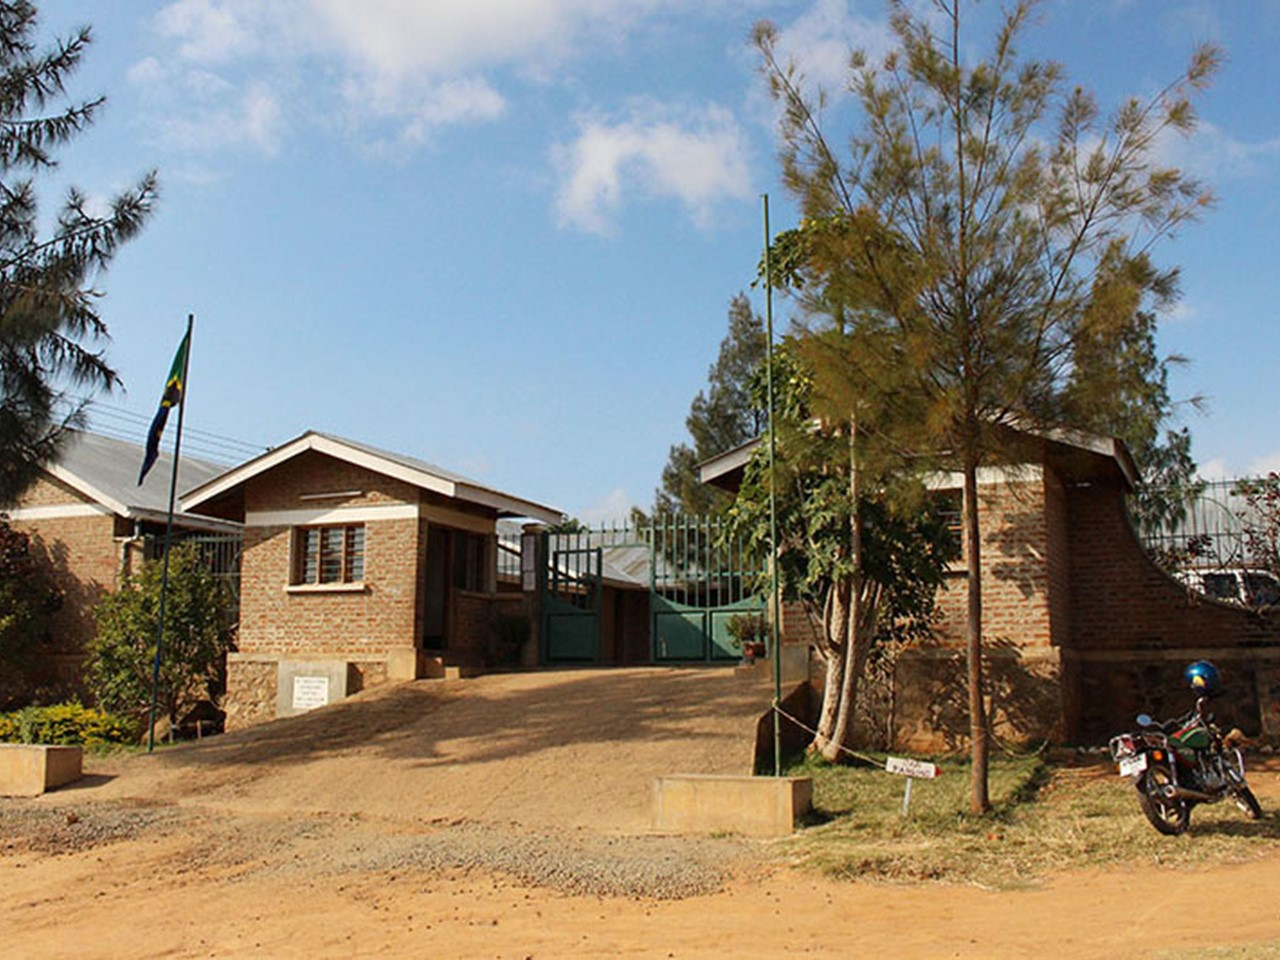 The Ilula Orphan Center (IOC)